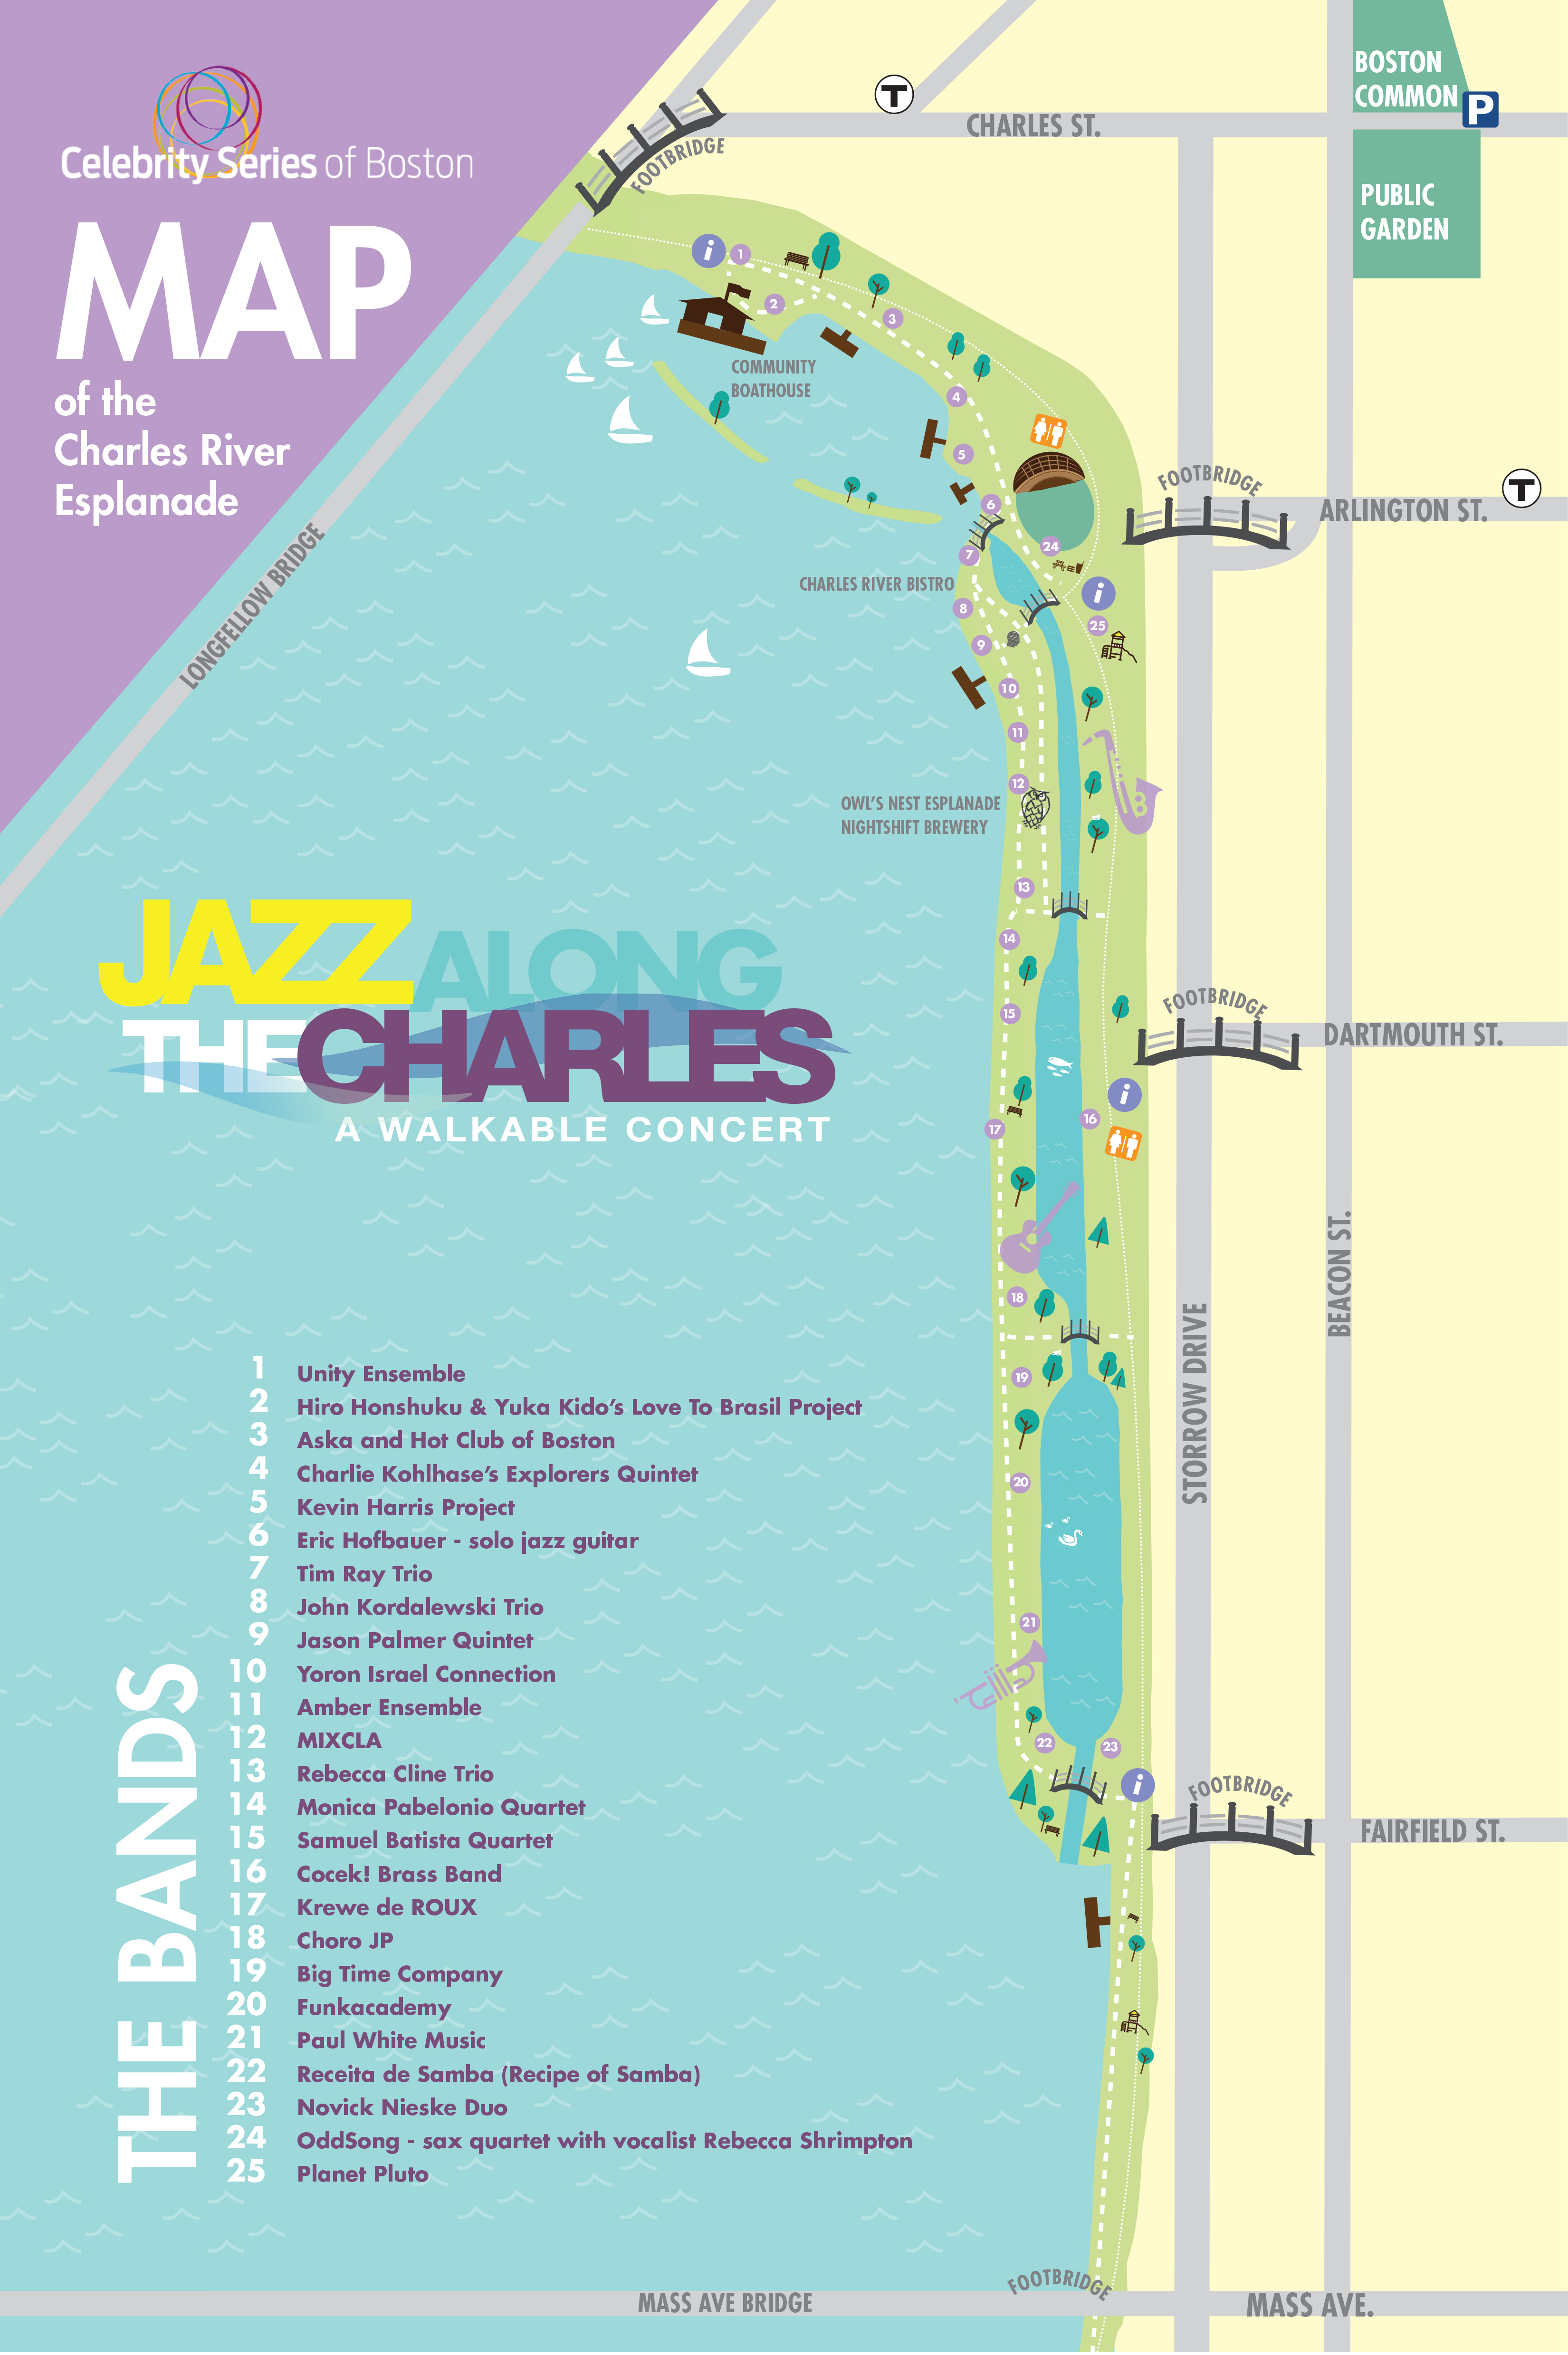 Jazz Along the Charles | Celebrity Series of Boston on